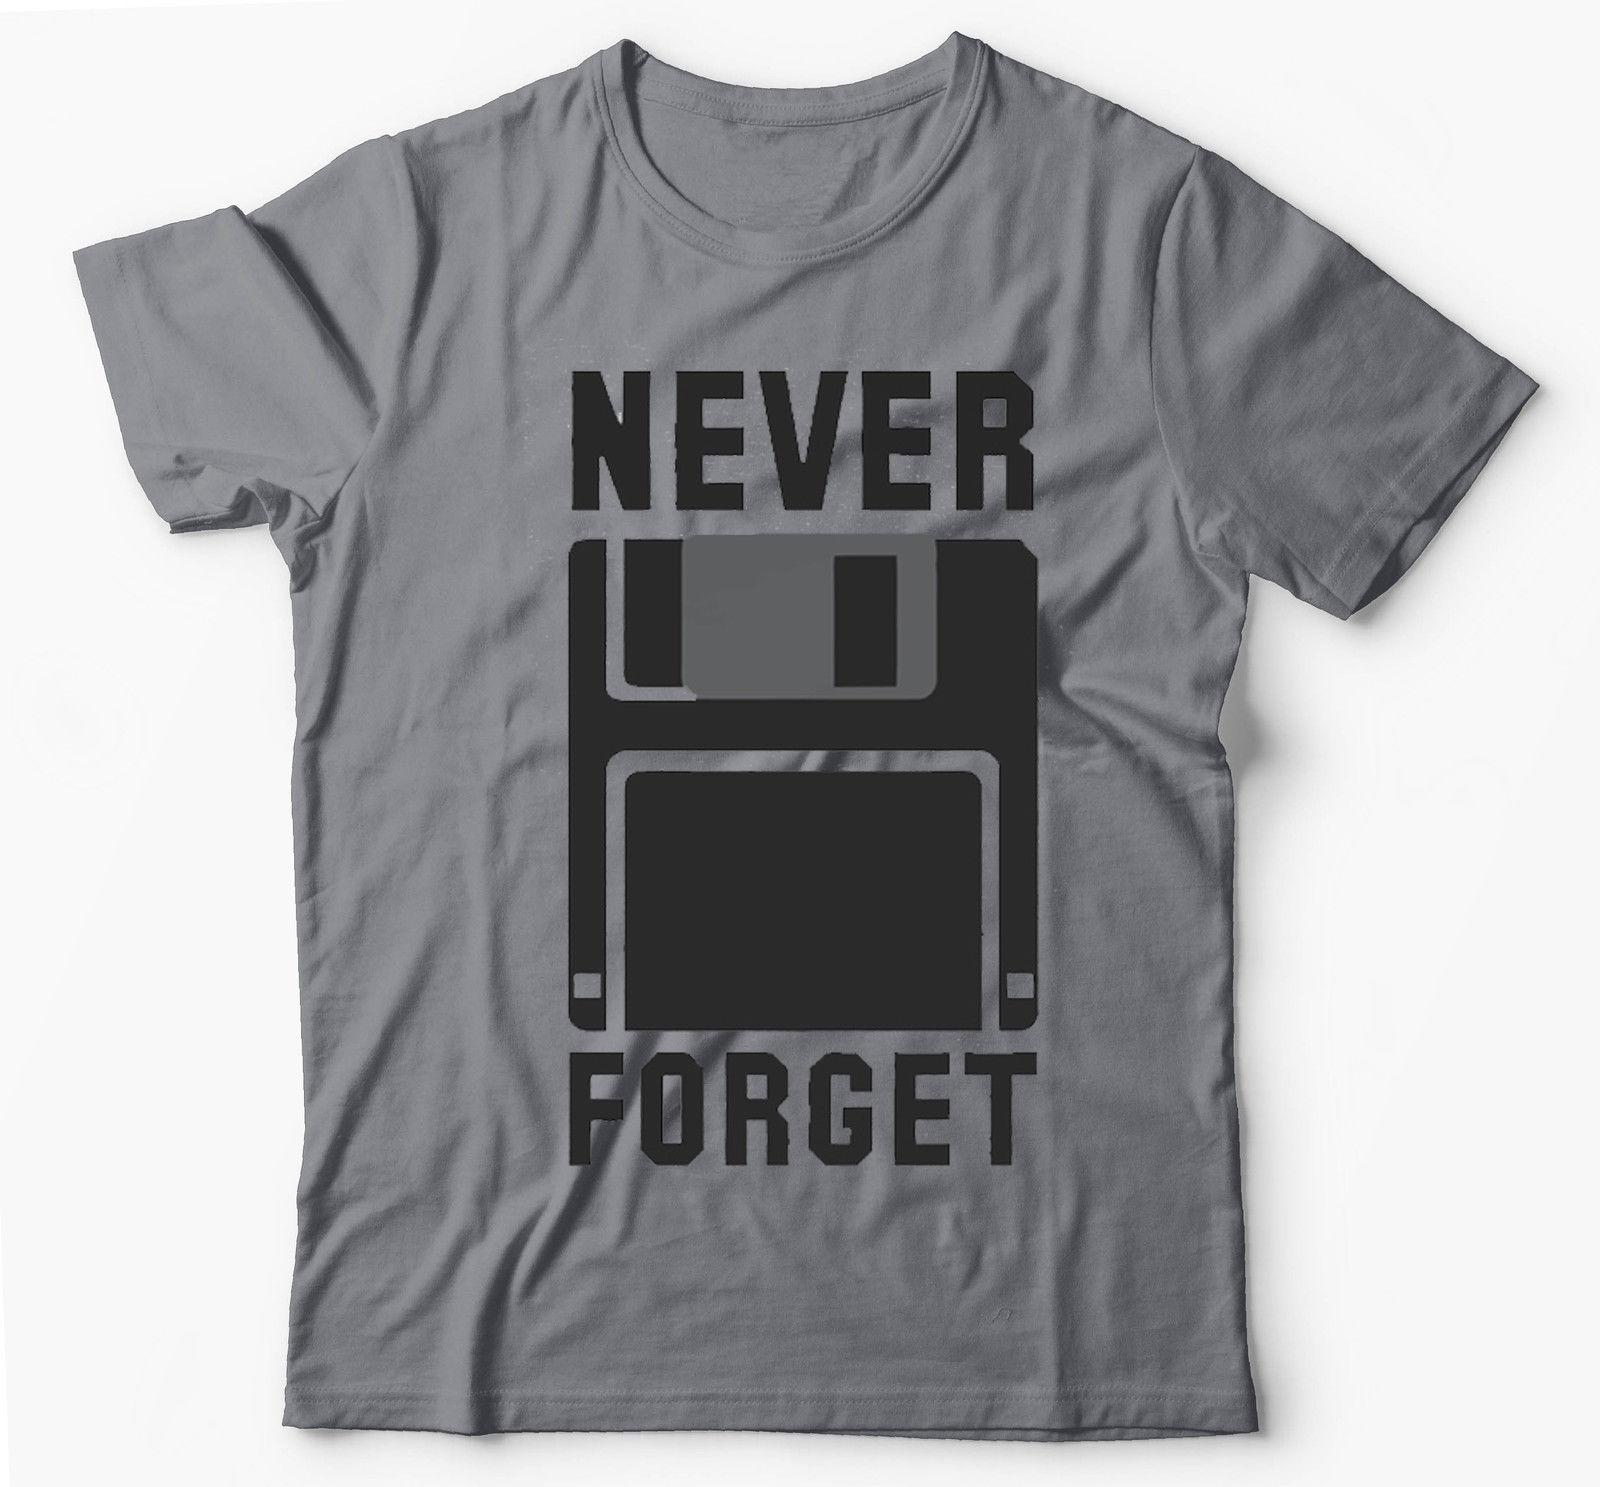 NEVER FORGET FLOPPY DISK SILICON VALLEY FUNNY GREY T-SHIRT Cool Casual pride t shirt men Unisex New Fashion tshirt